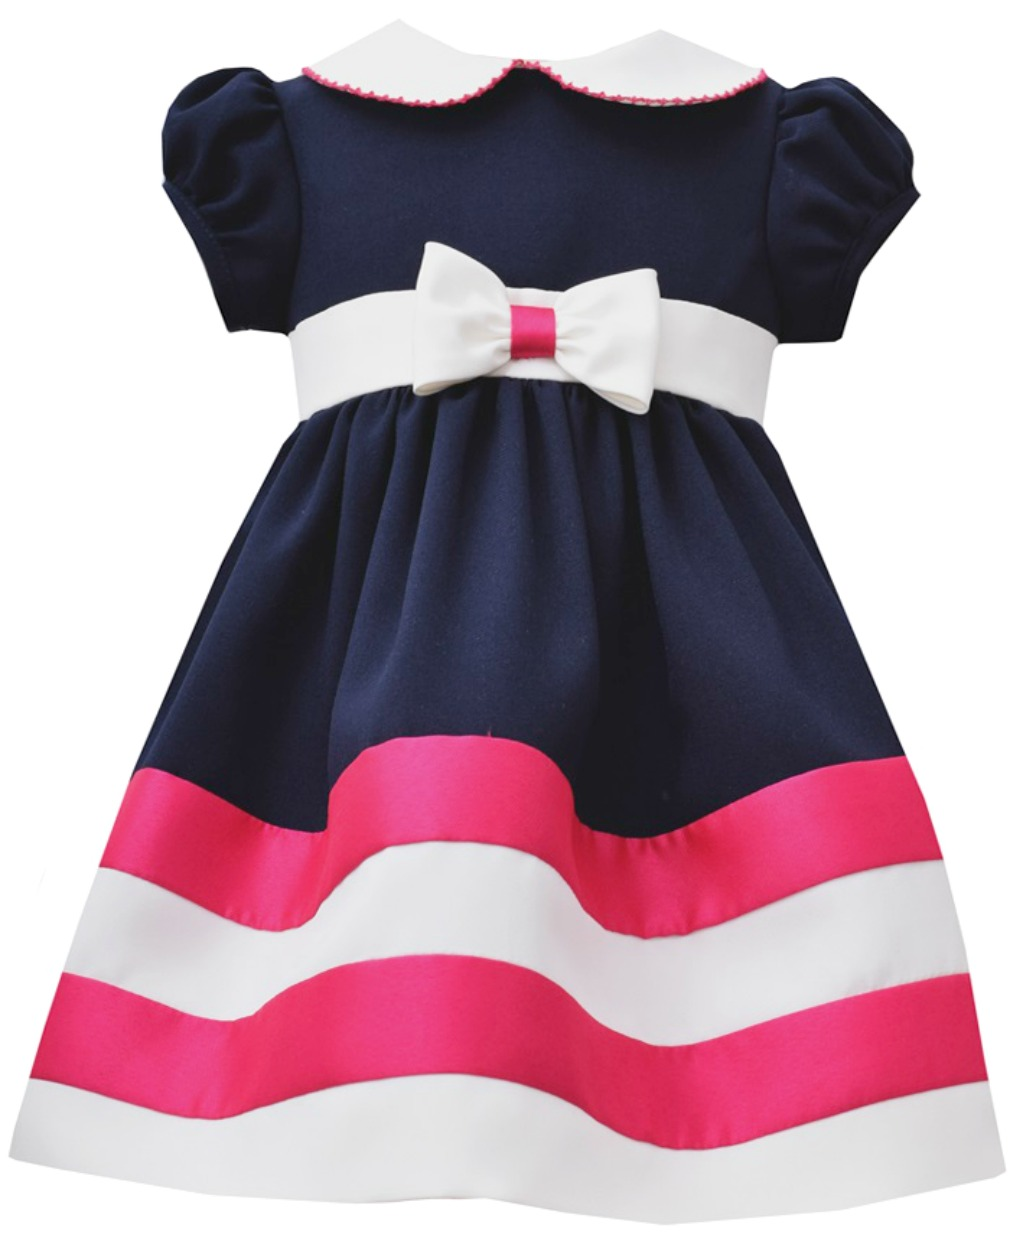 6bf5b943bab Bonnie Jean Little Girls' Nautical Navy Fuchsia Striped Dress 2T